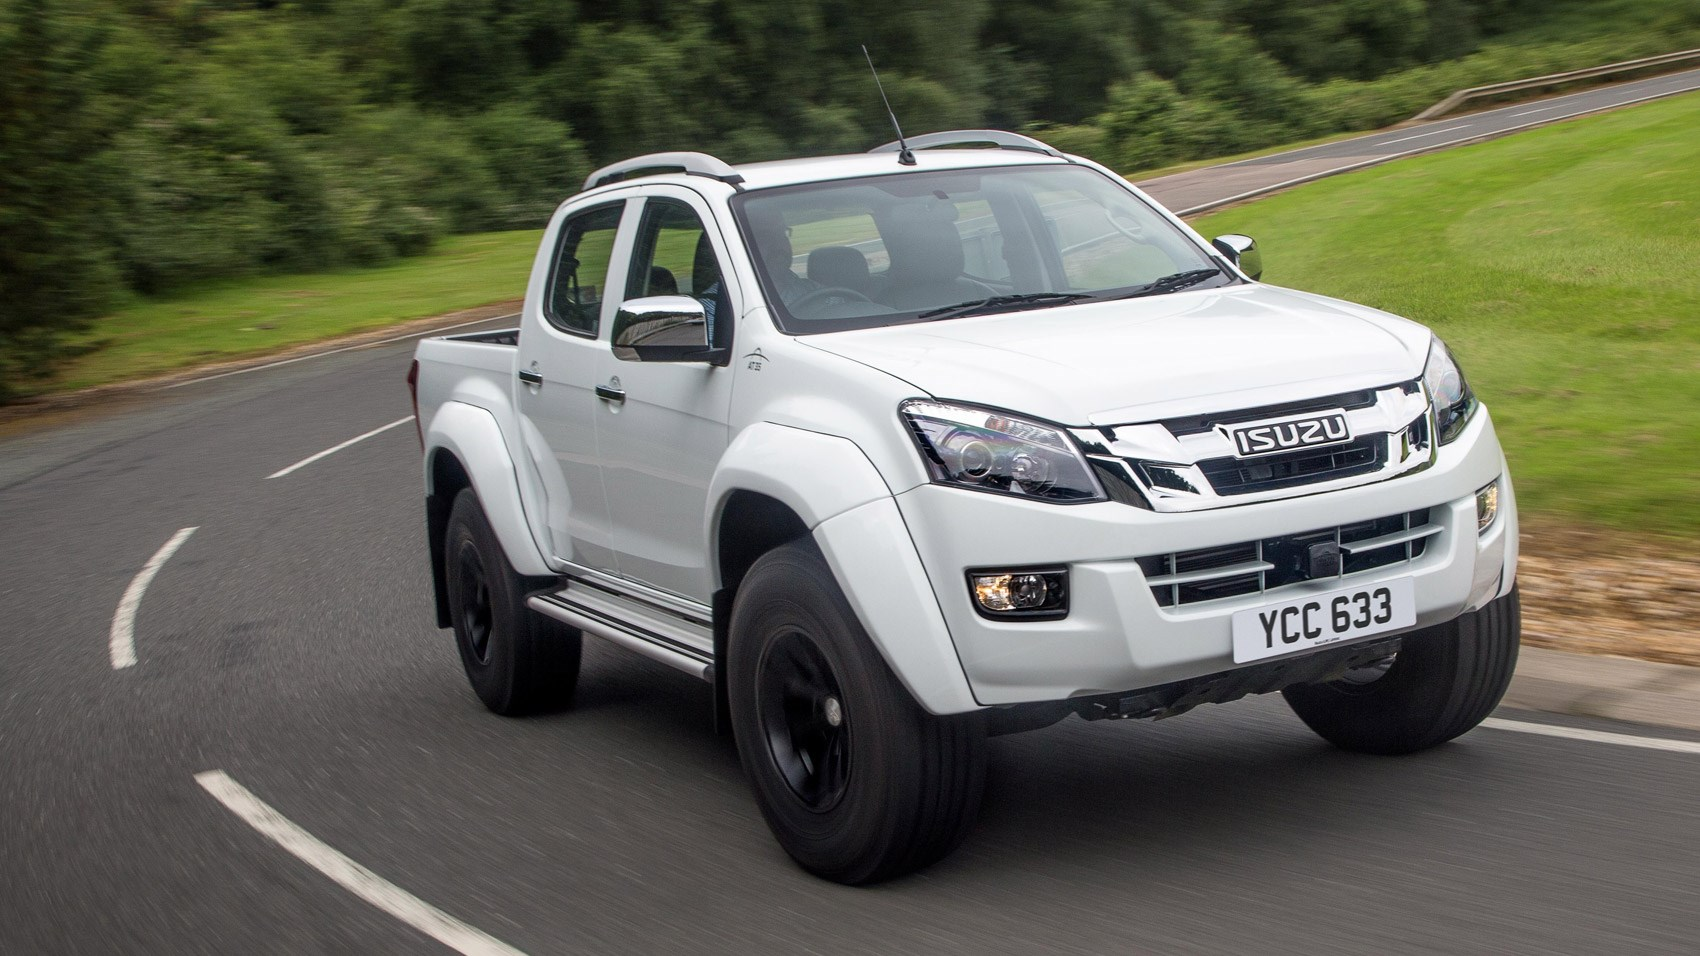 2016 Ford Ranger >> Isuzu D-Max Arctic Trucks AT35 (2016) review | CAR Magazine